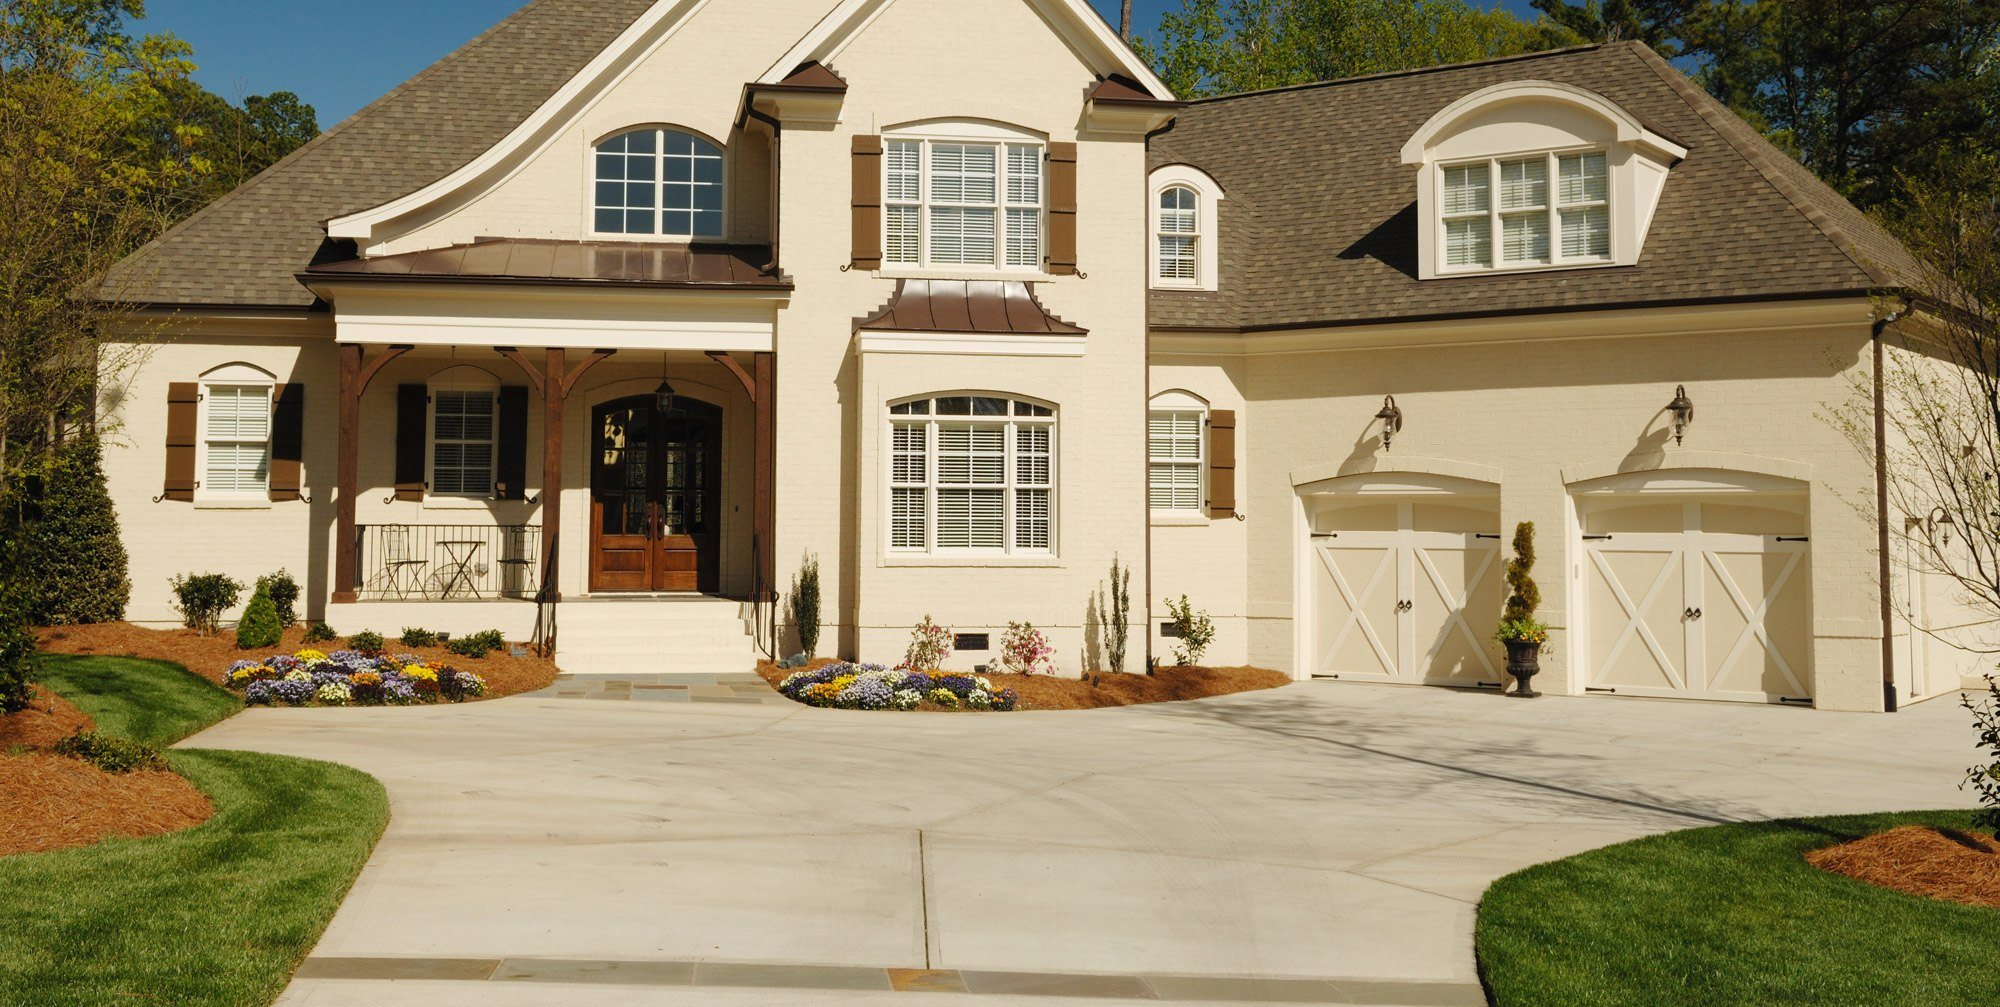 Home Security Systems, Perrysburg, Ohio